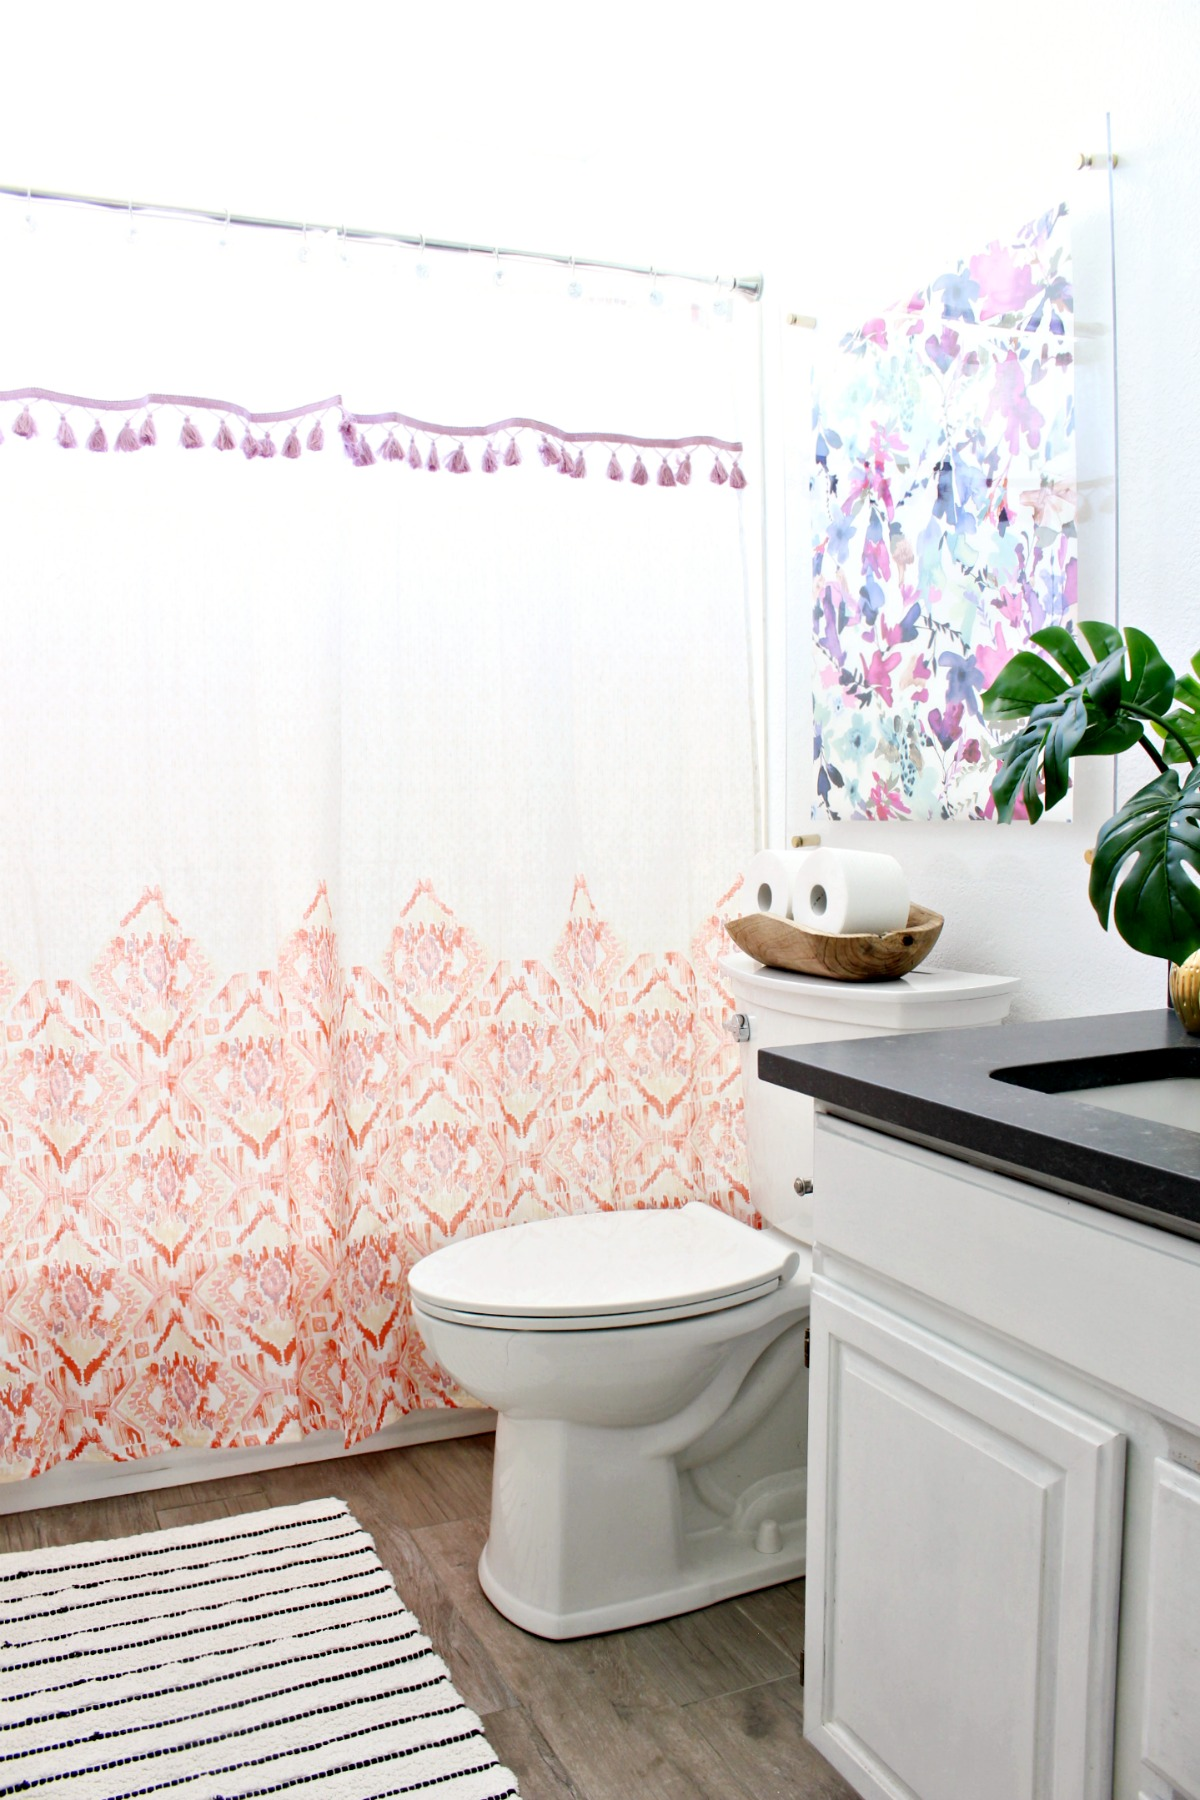 Guest Bathroom Ideas (How to clean and prepare for guests)